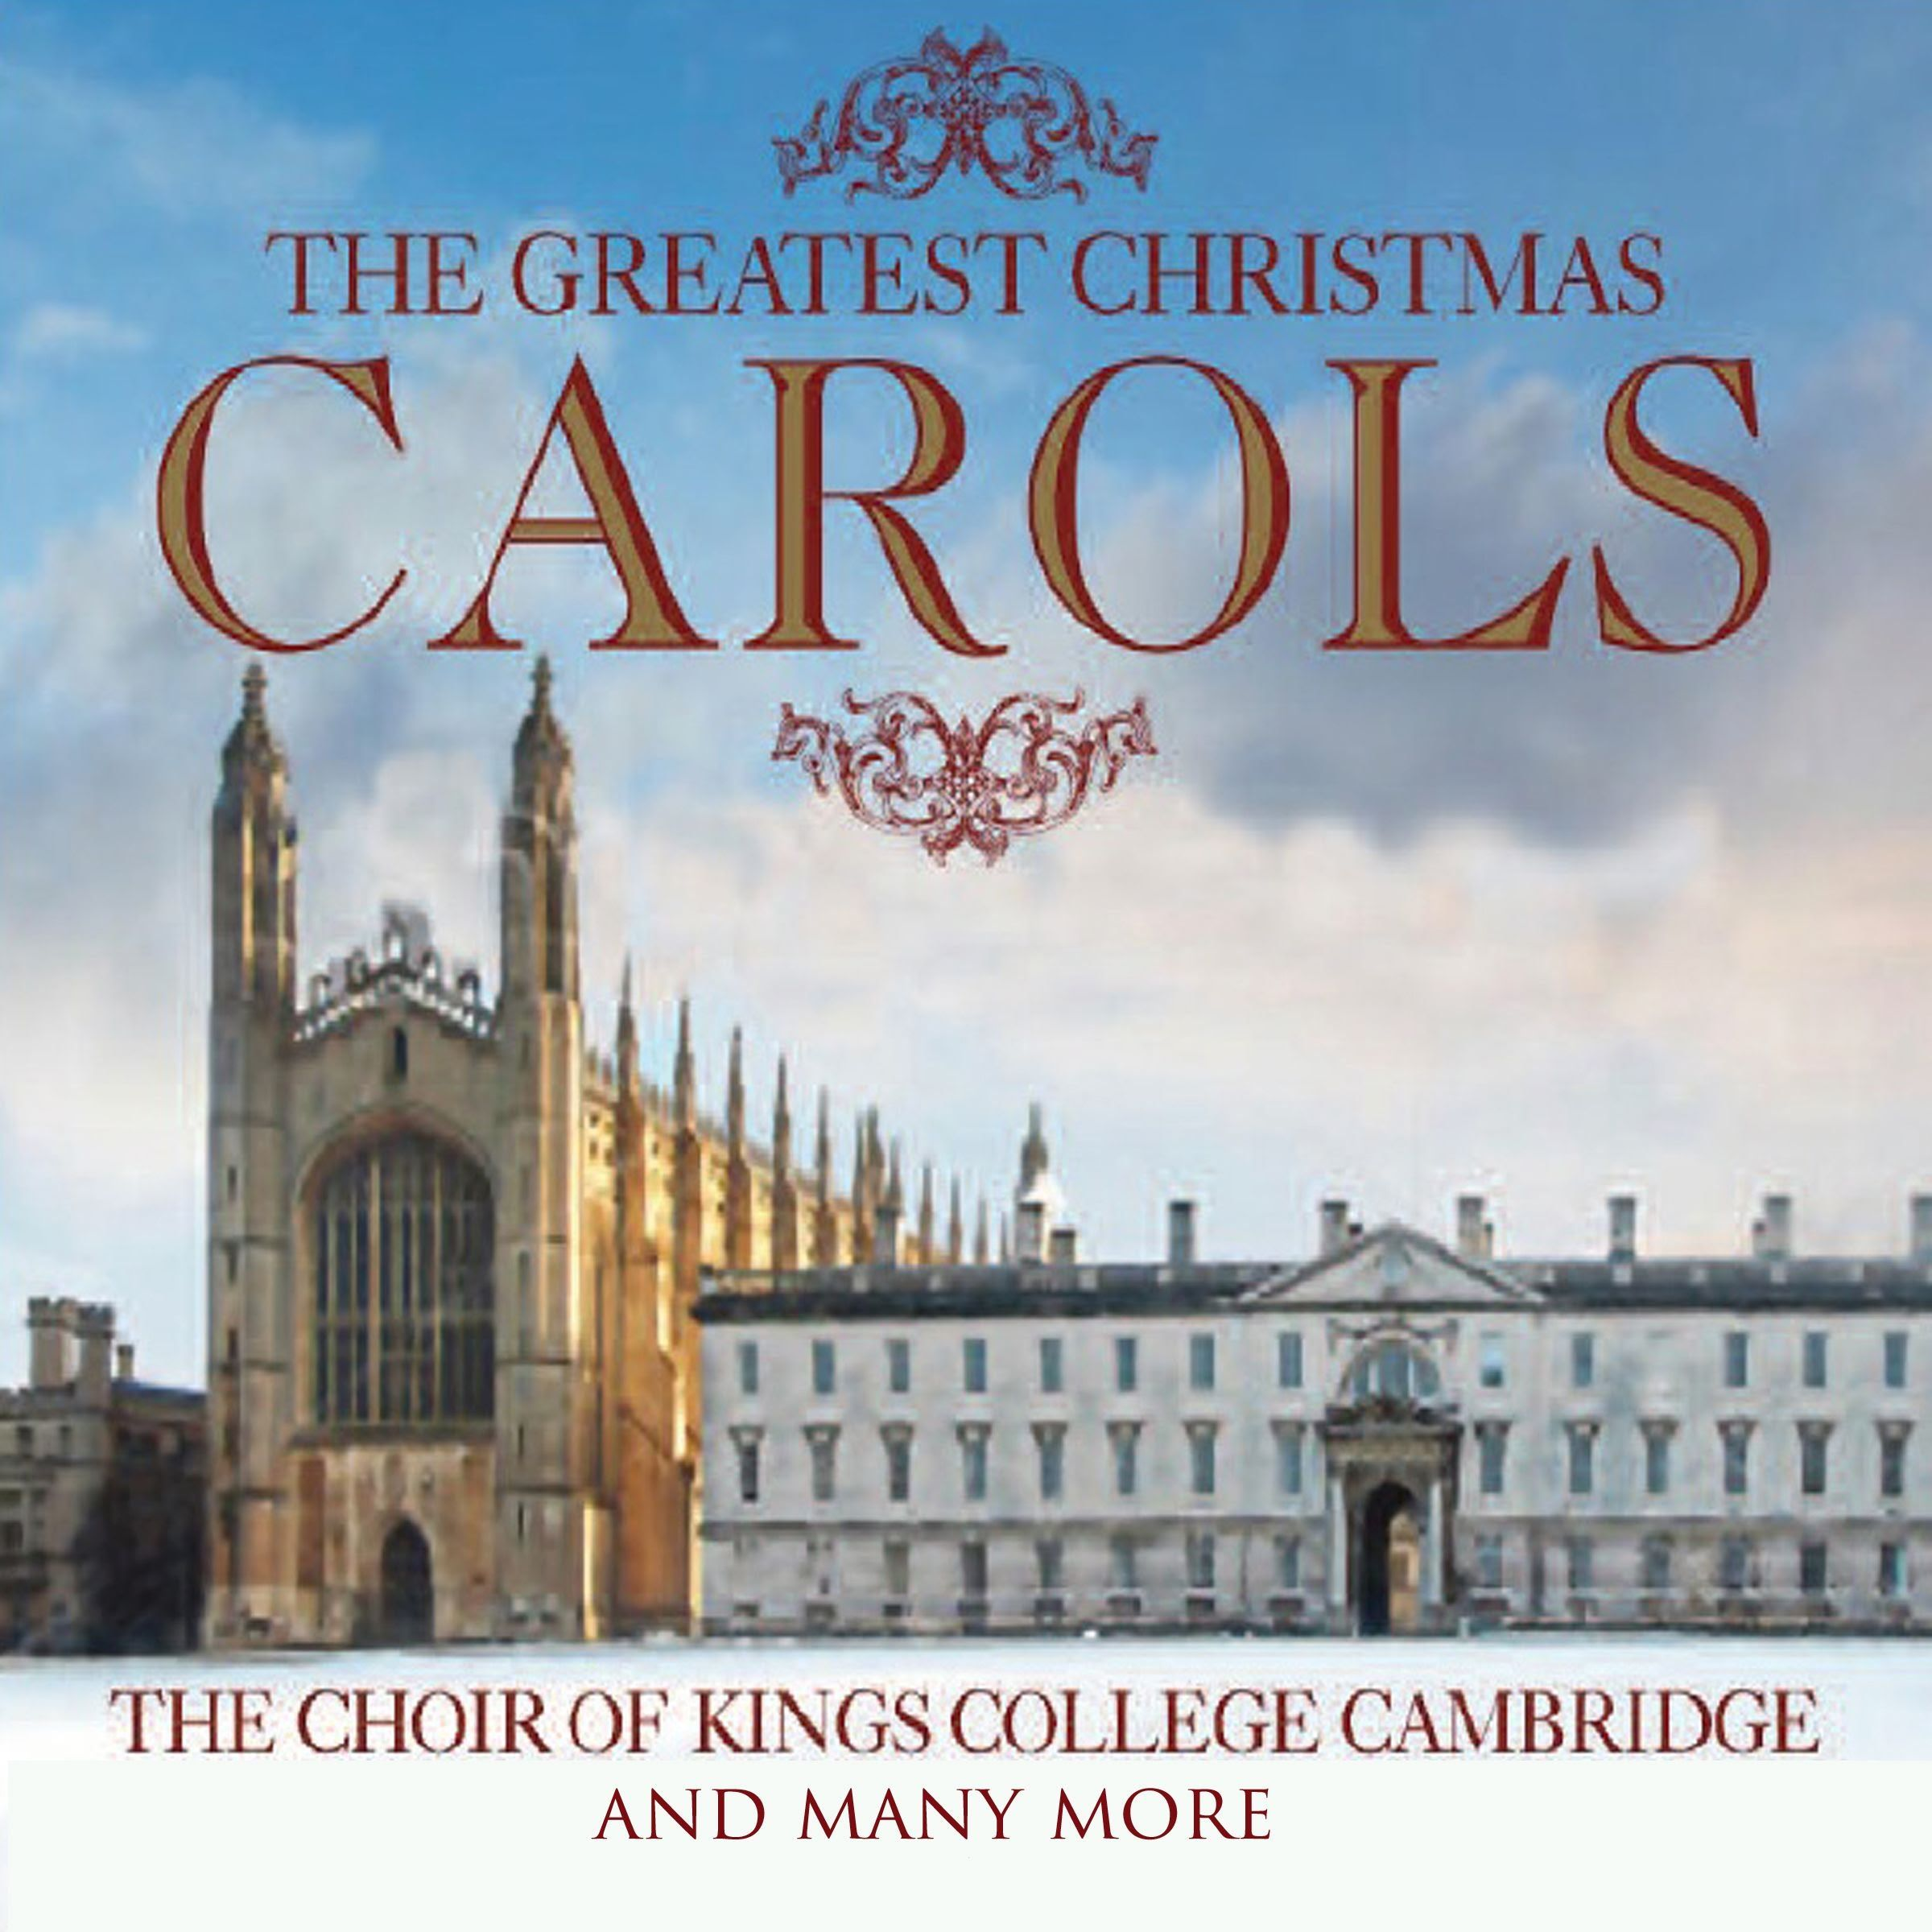 greatest christmas carols 50 festive classics full album